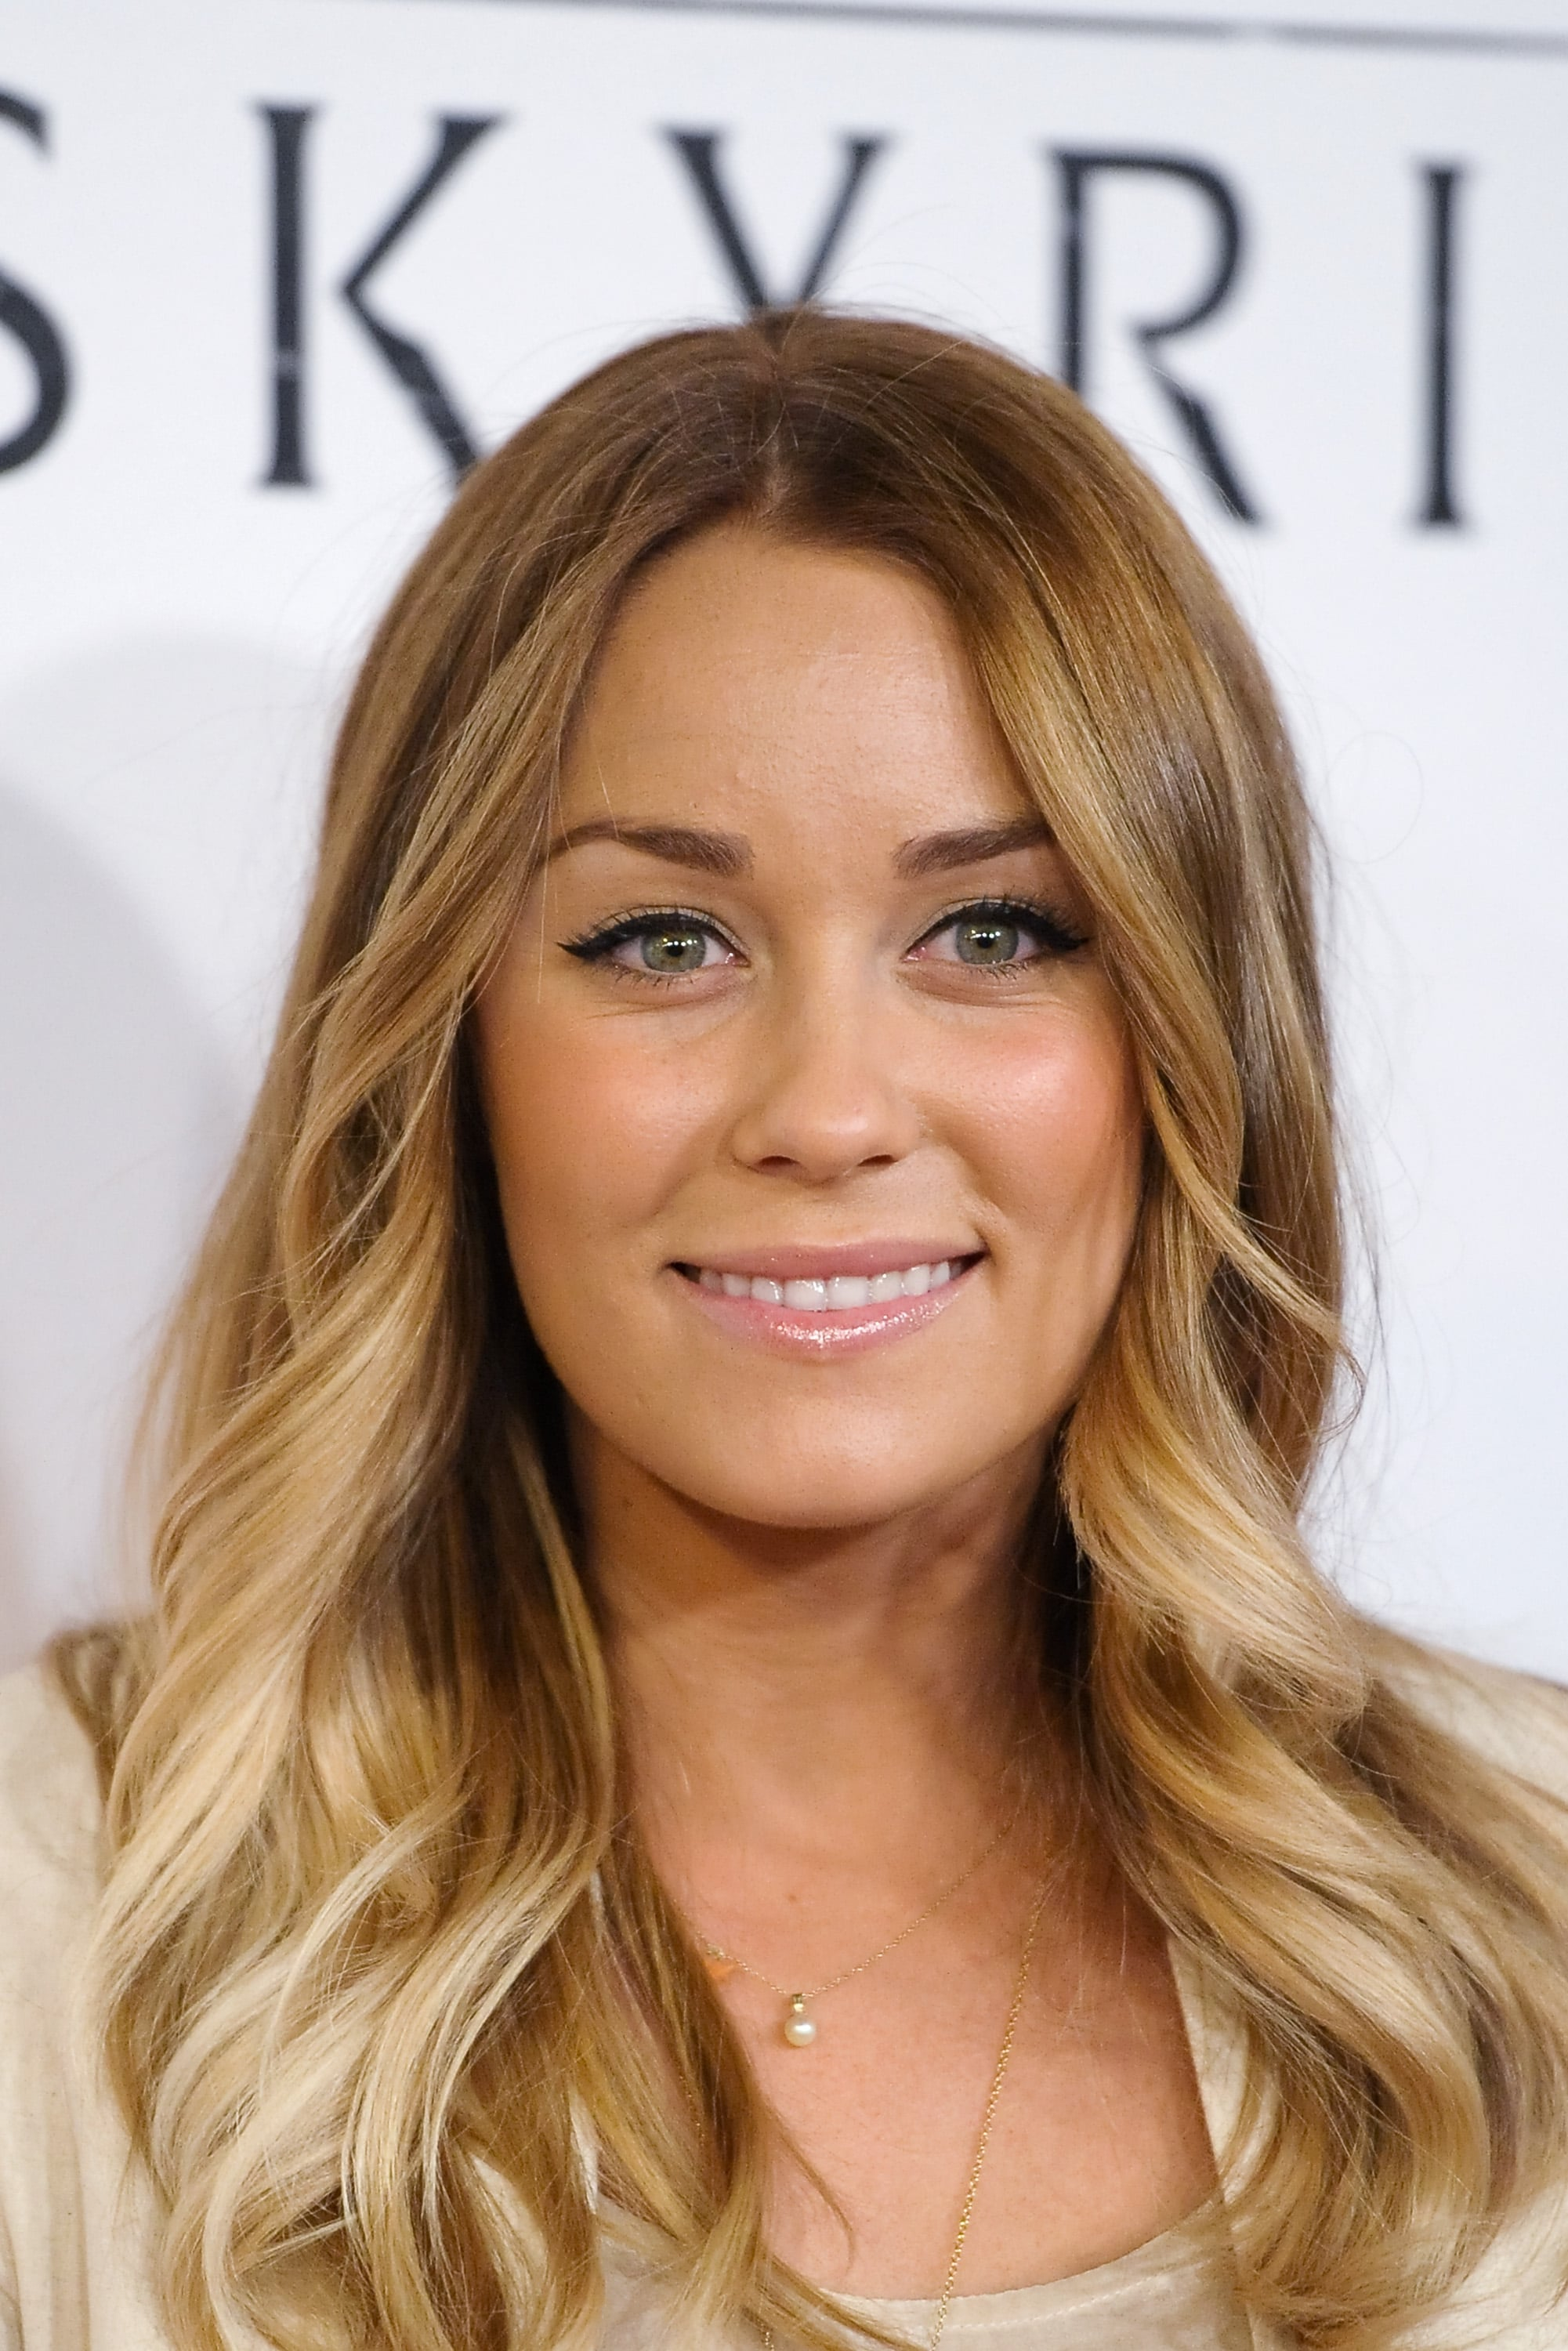 LC debuted lighter locks for the party.